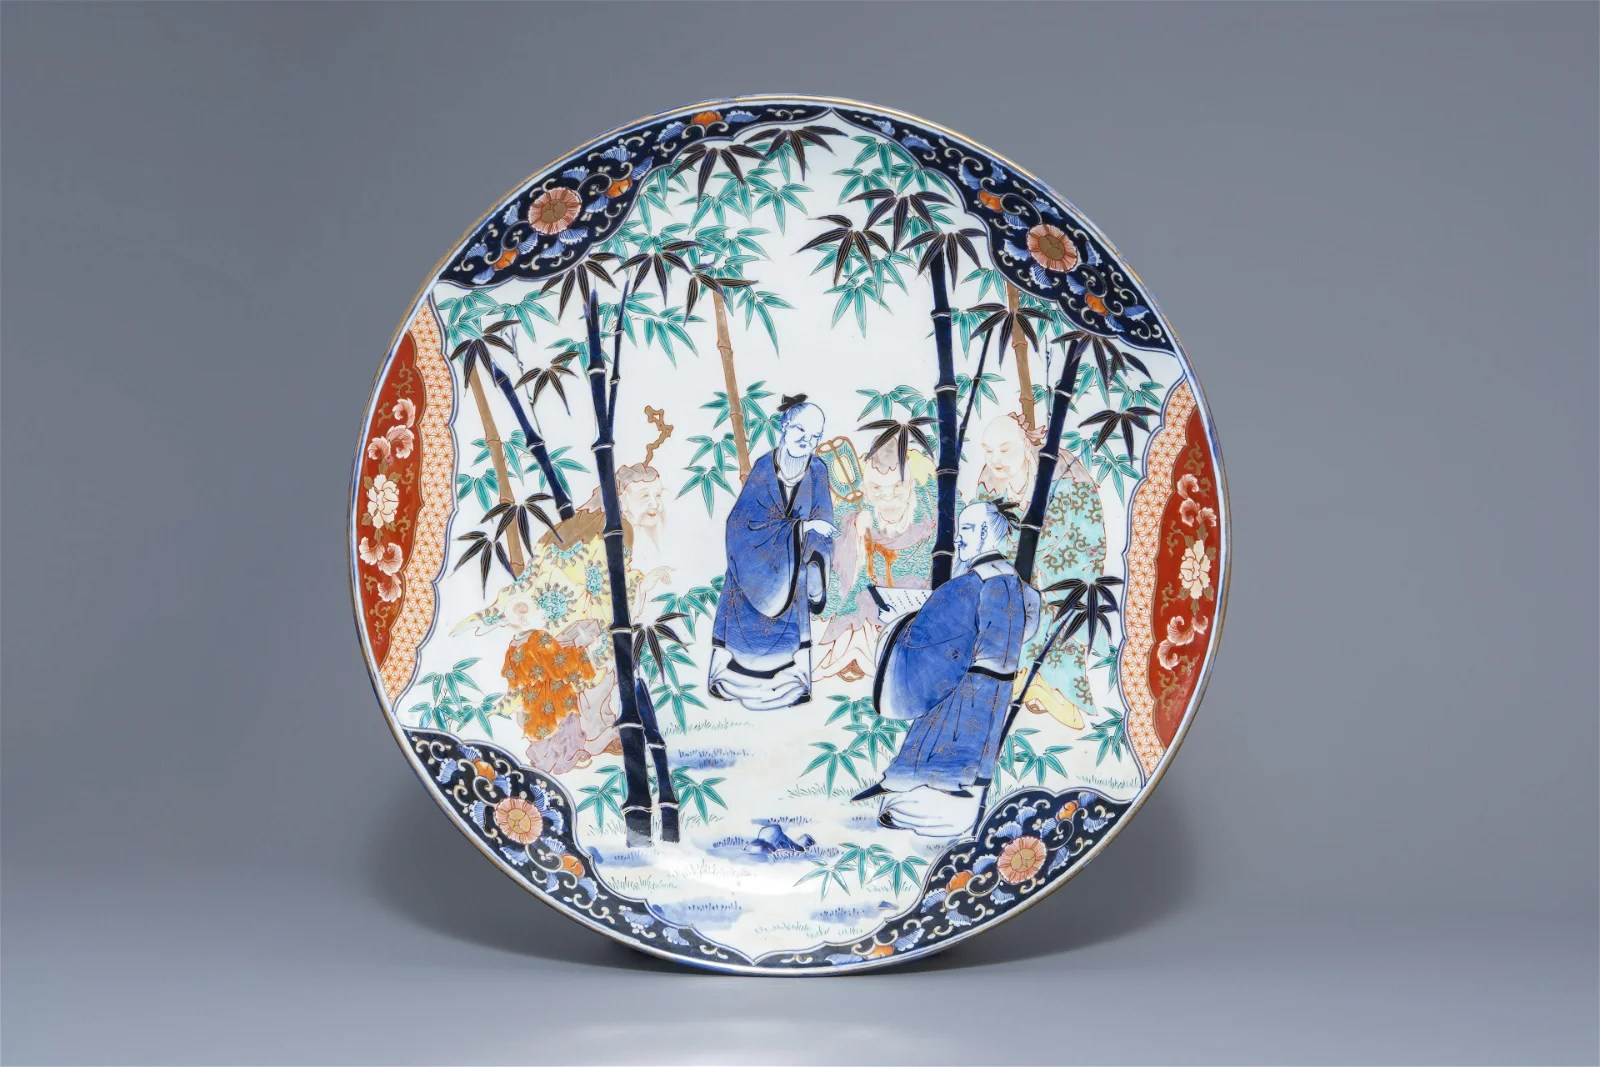 A large Japanese Imari charger with figures in a